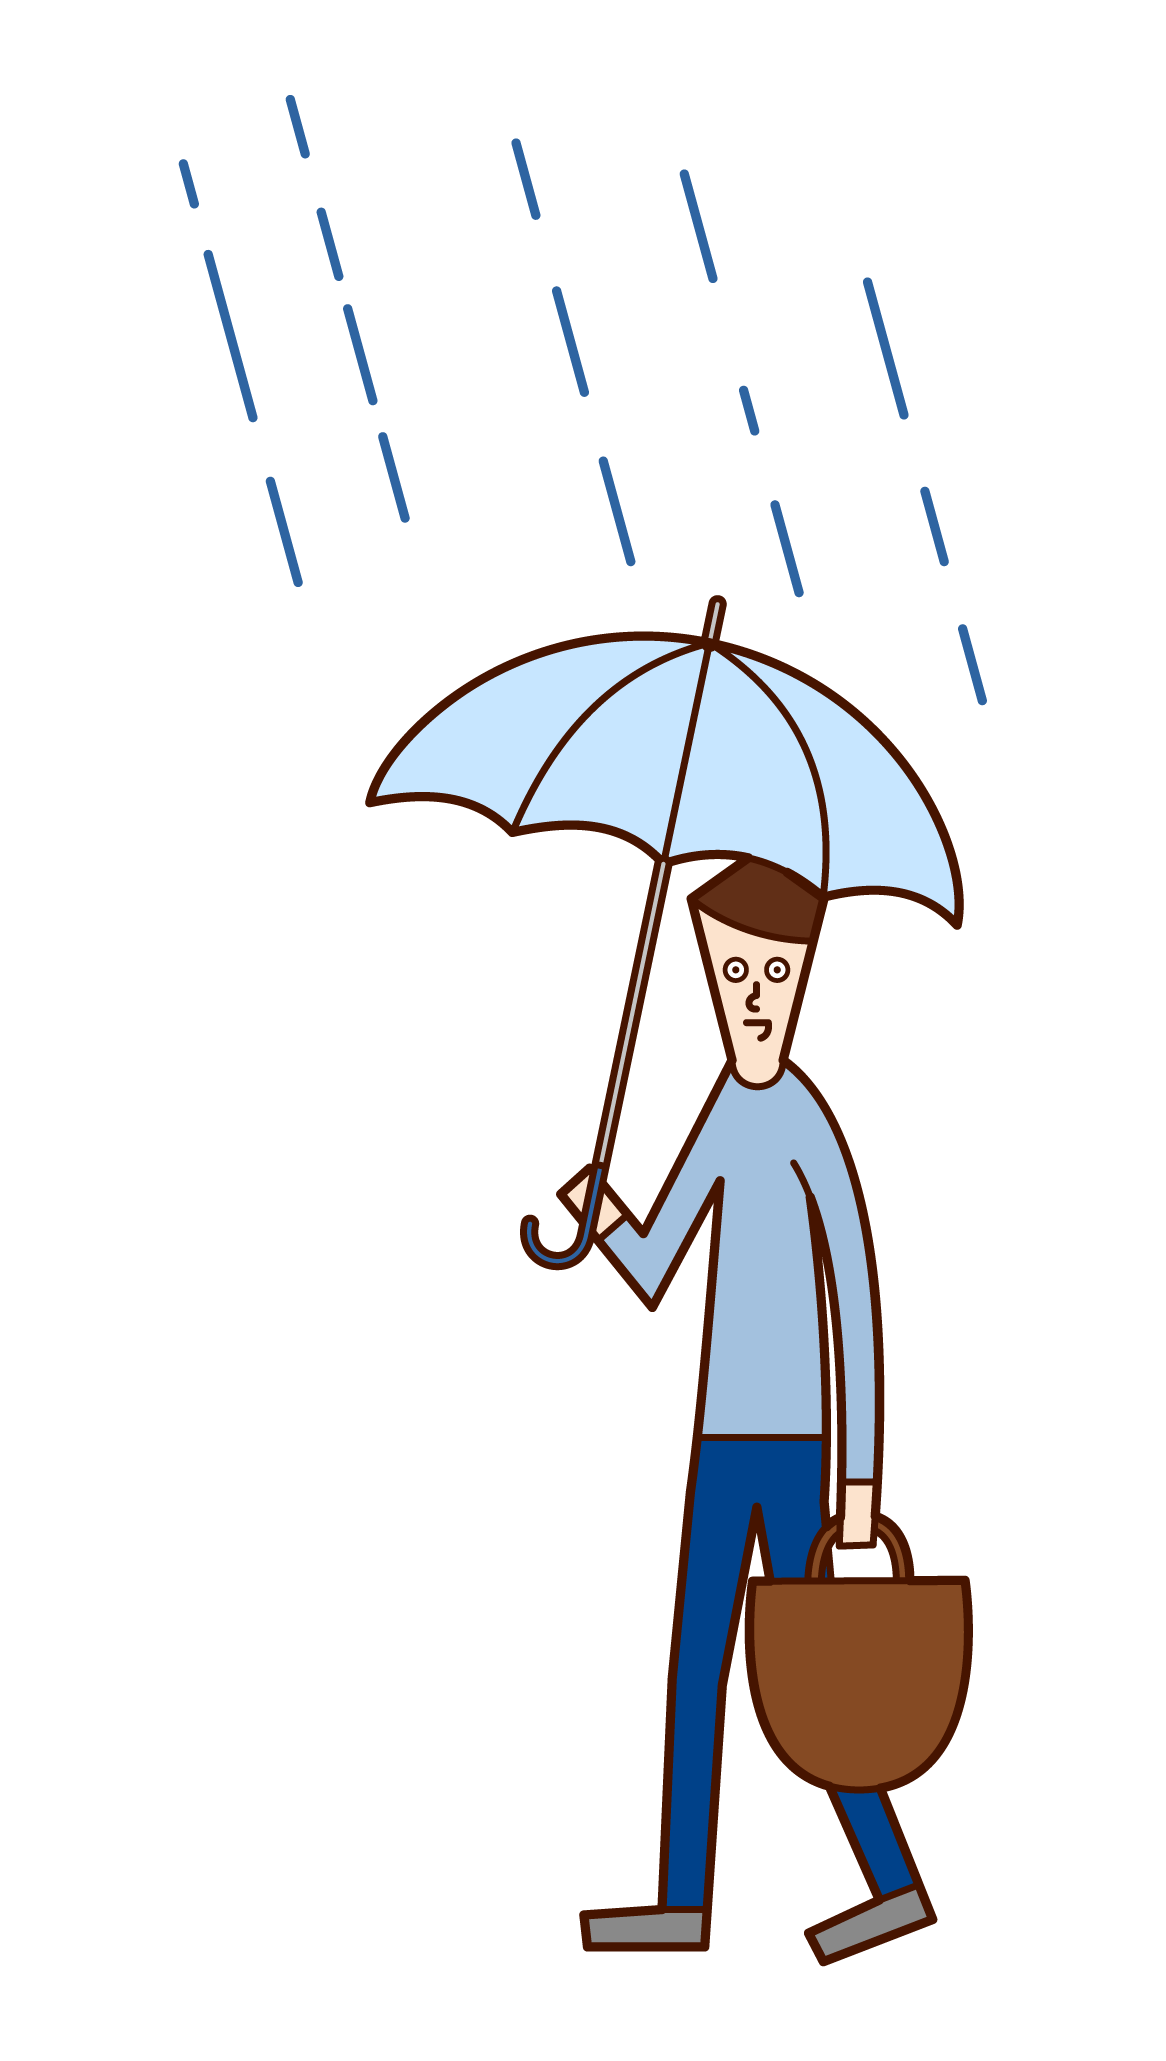 Illustration of a man walking with an umbrella